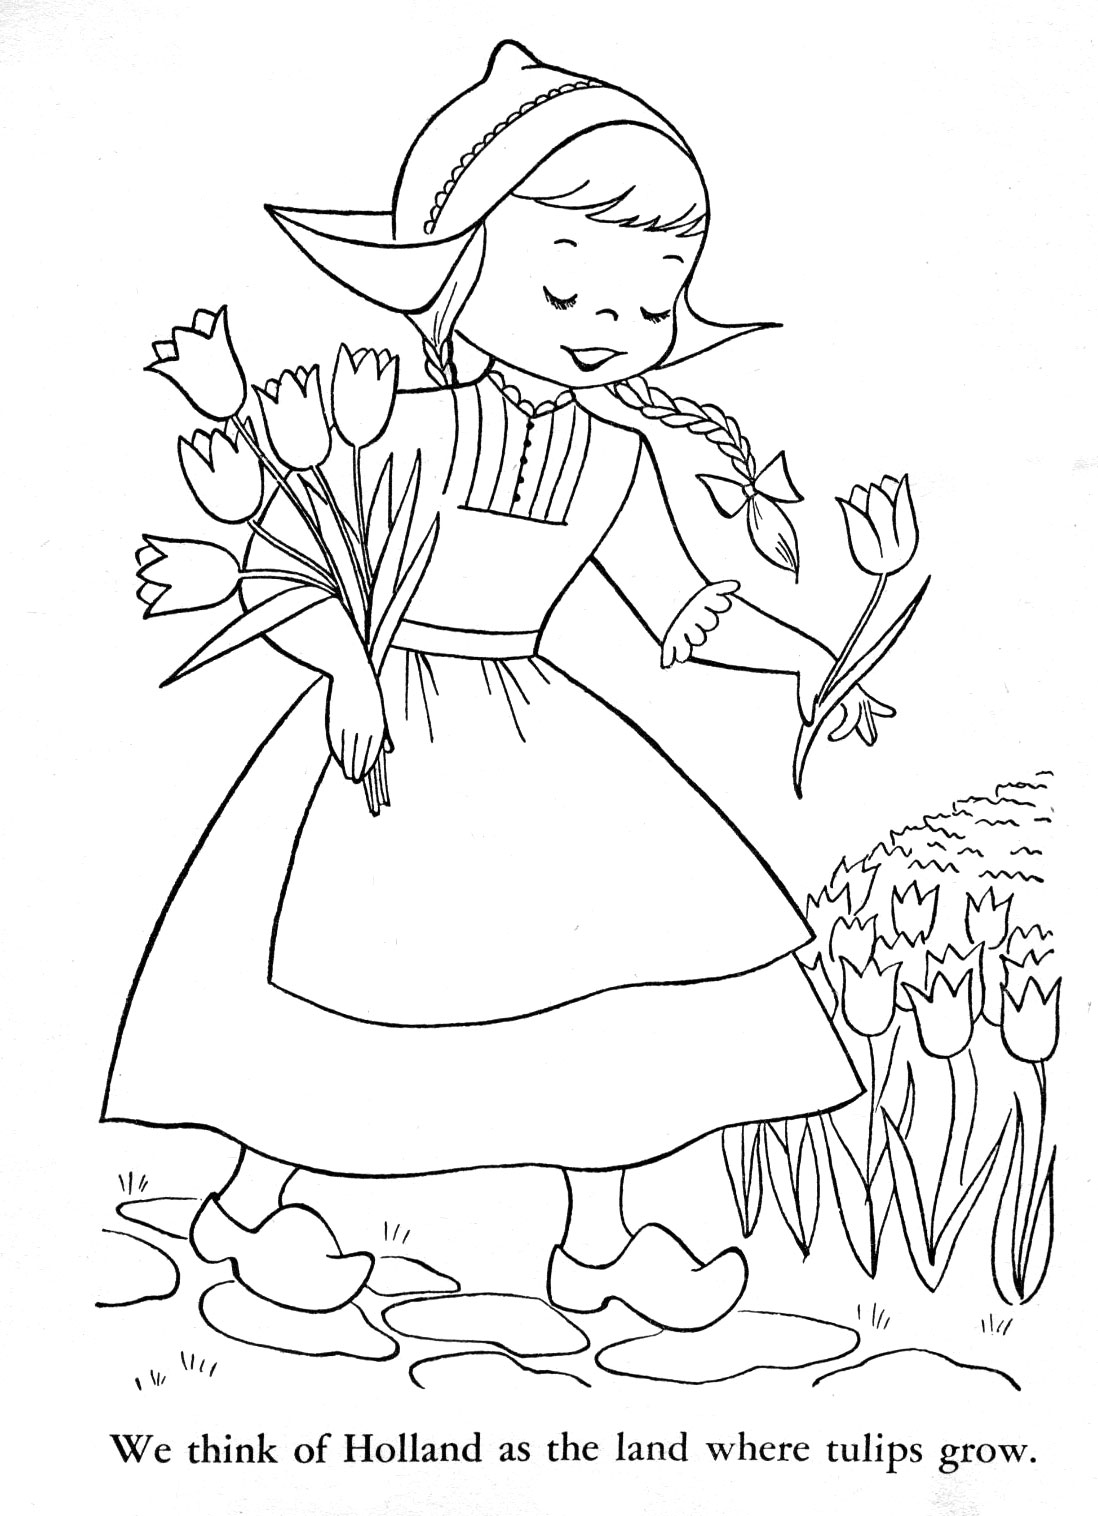 holland coloring pages - photo#4